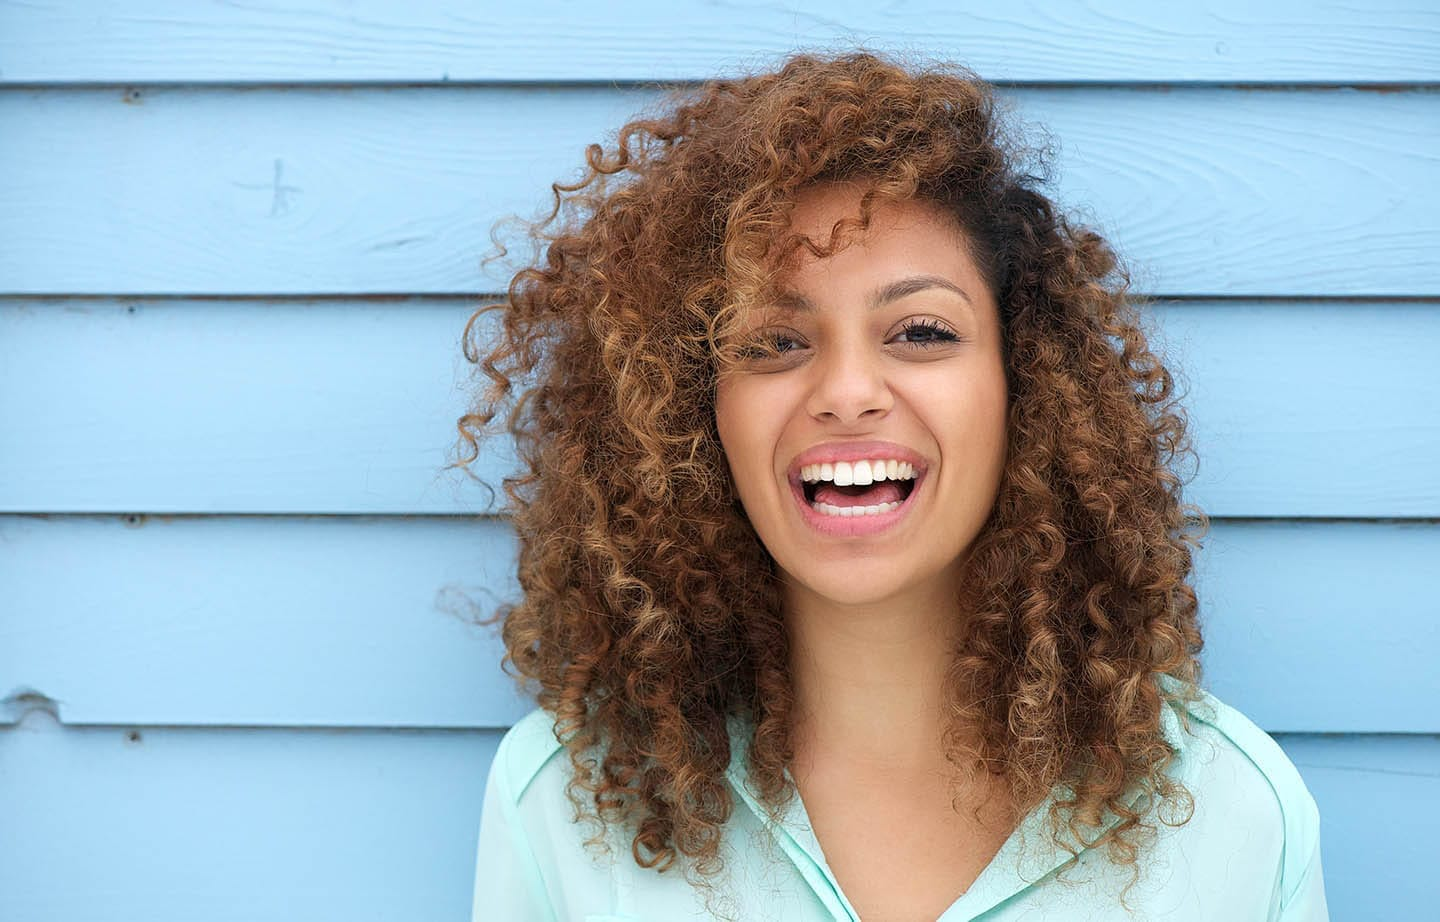 Girl with curly hair smiling in front of a blue background